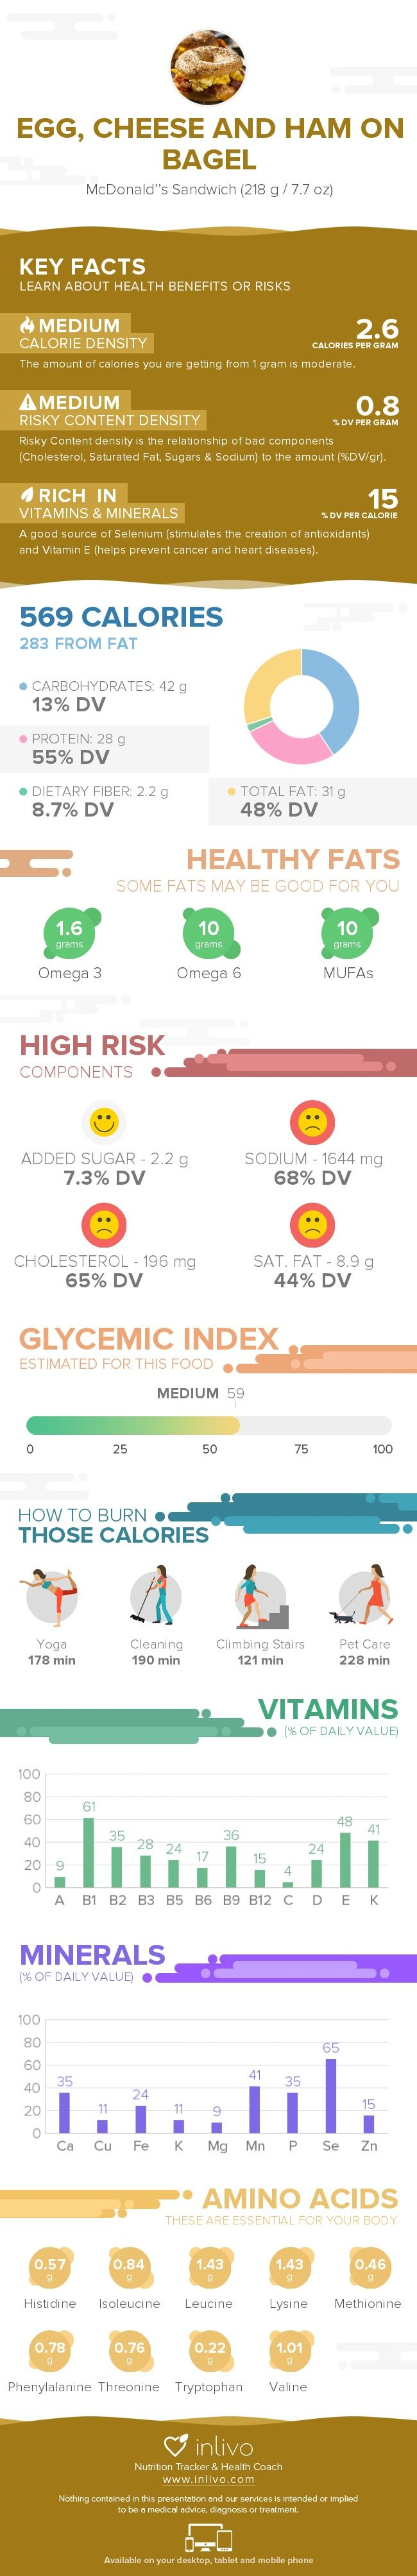 Egg, Cheese And Ham On Bagel Nutrition Infographic #nutrigraphics #inlivo